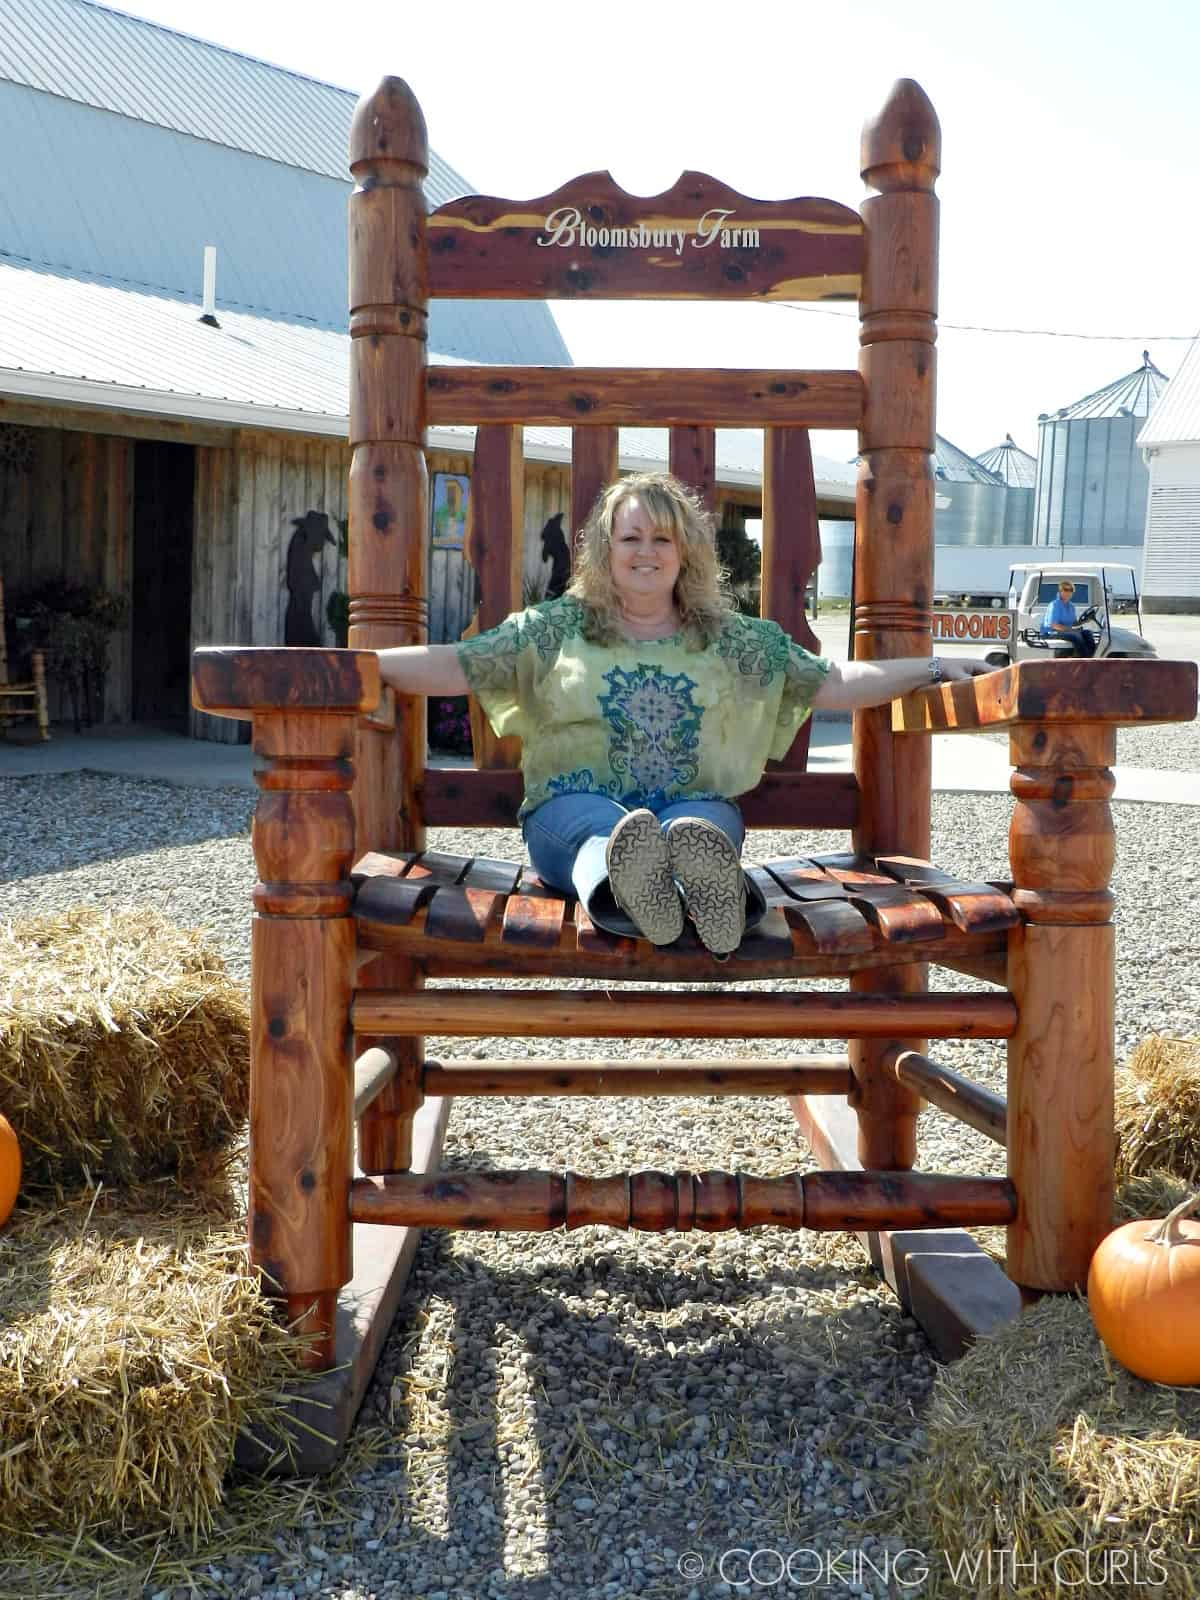 a woman with curly blonde hair sitting in a giant wood chair on a pumpkin patch.